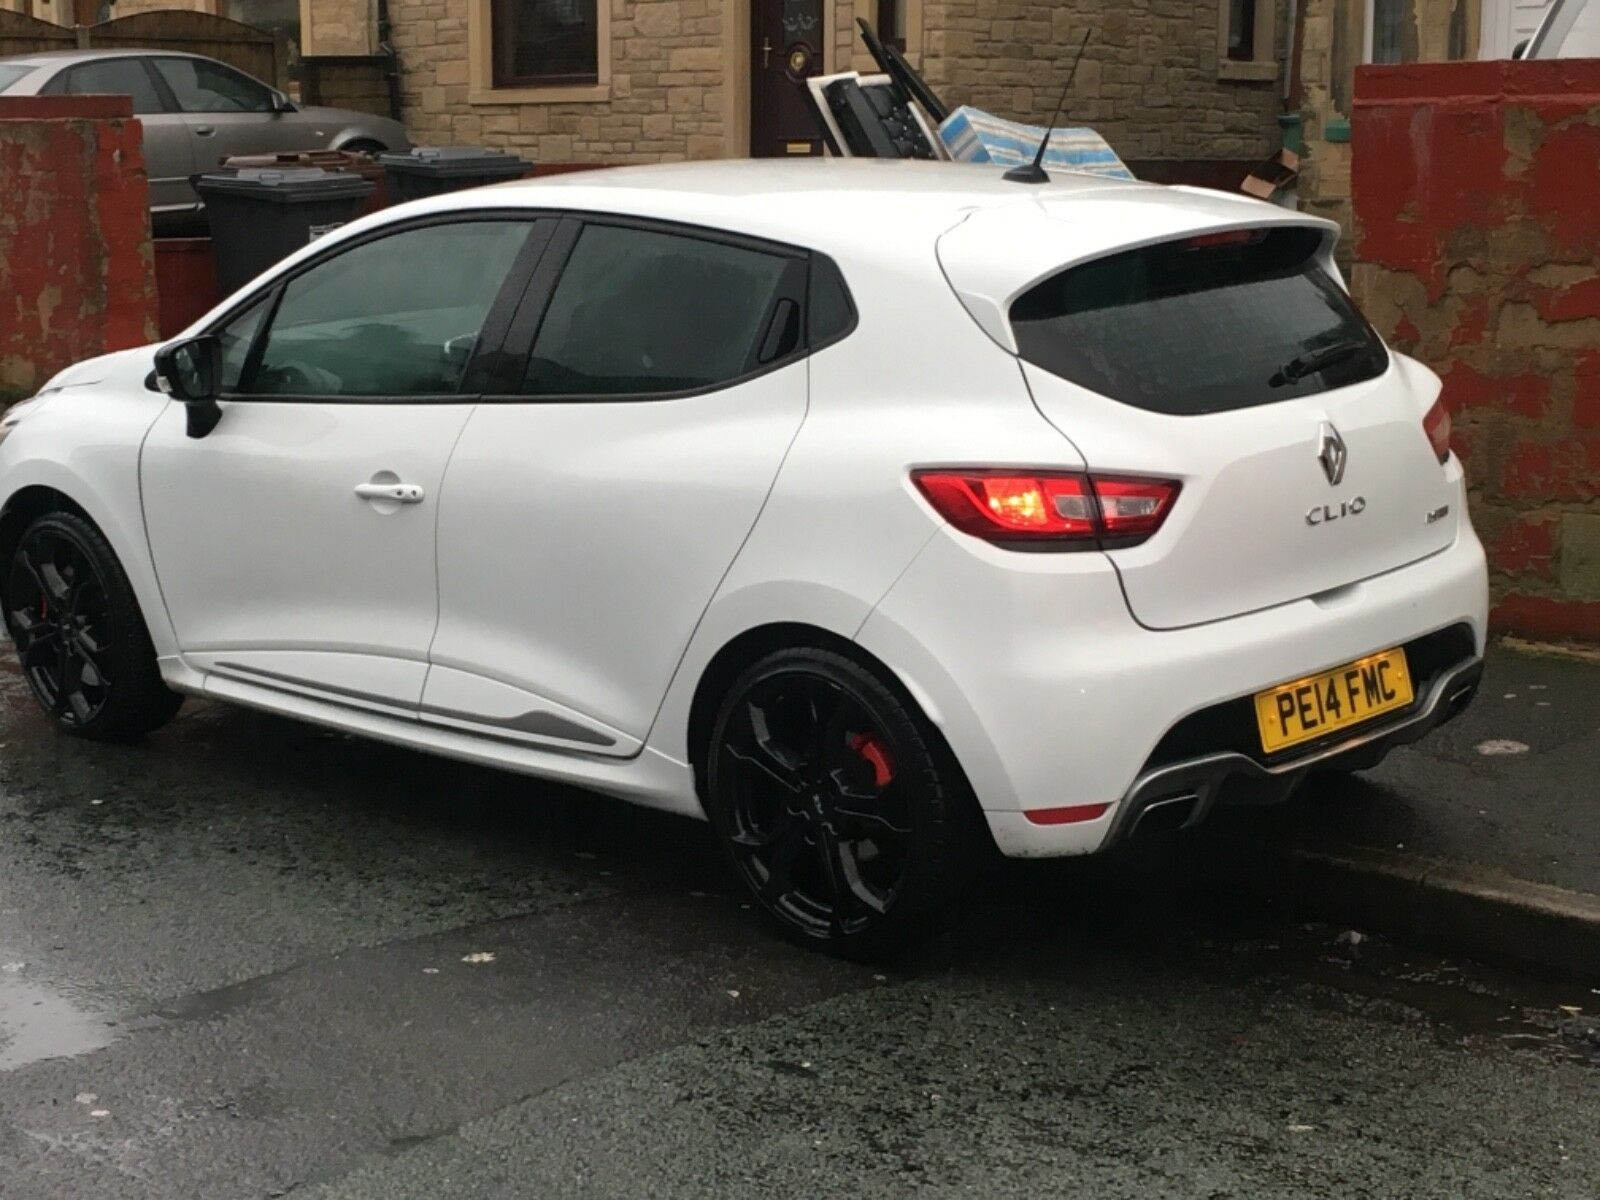 2014 renault clio rs 5dr lux edc 200bhp auto satnav 1 6 turbo px swap swop 7 picclick uk. Black Bedroom Furniture Sets. Home Design Ideas